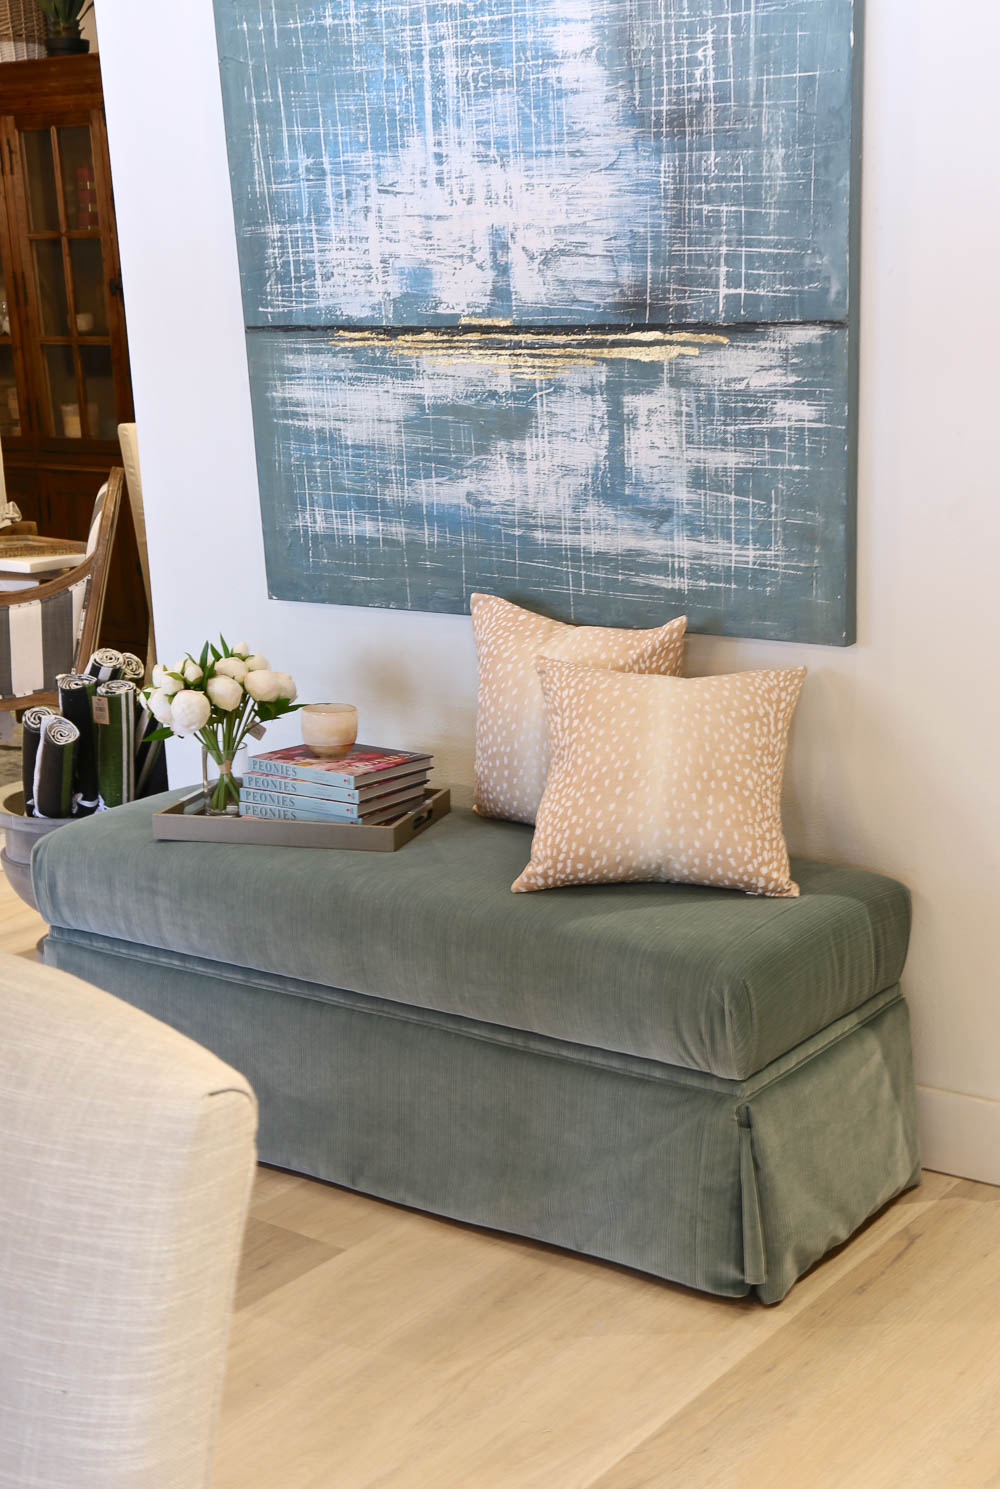 Skirted Storage Bench from Layered Home Design Center